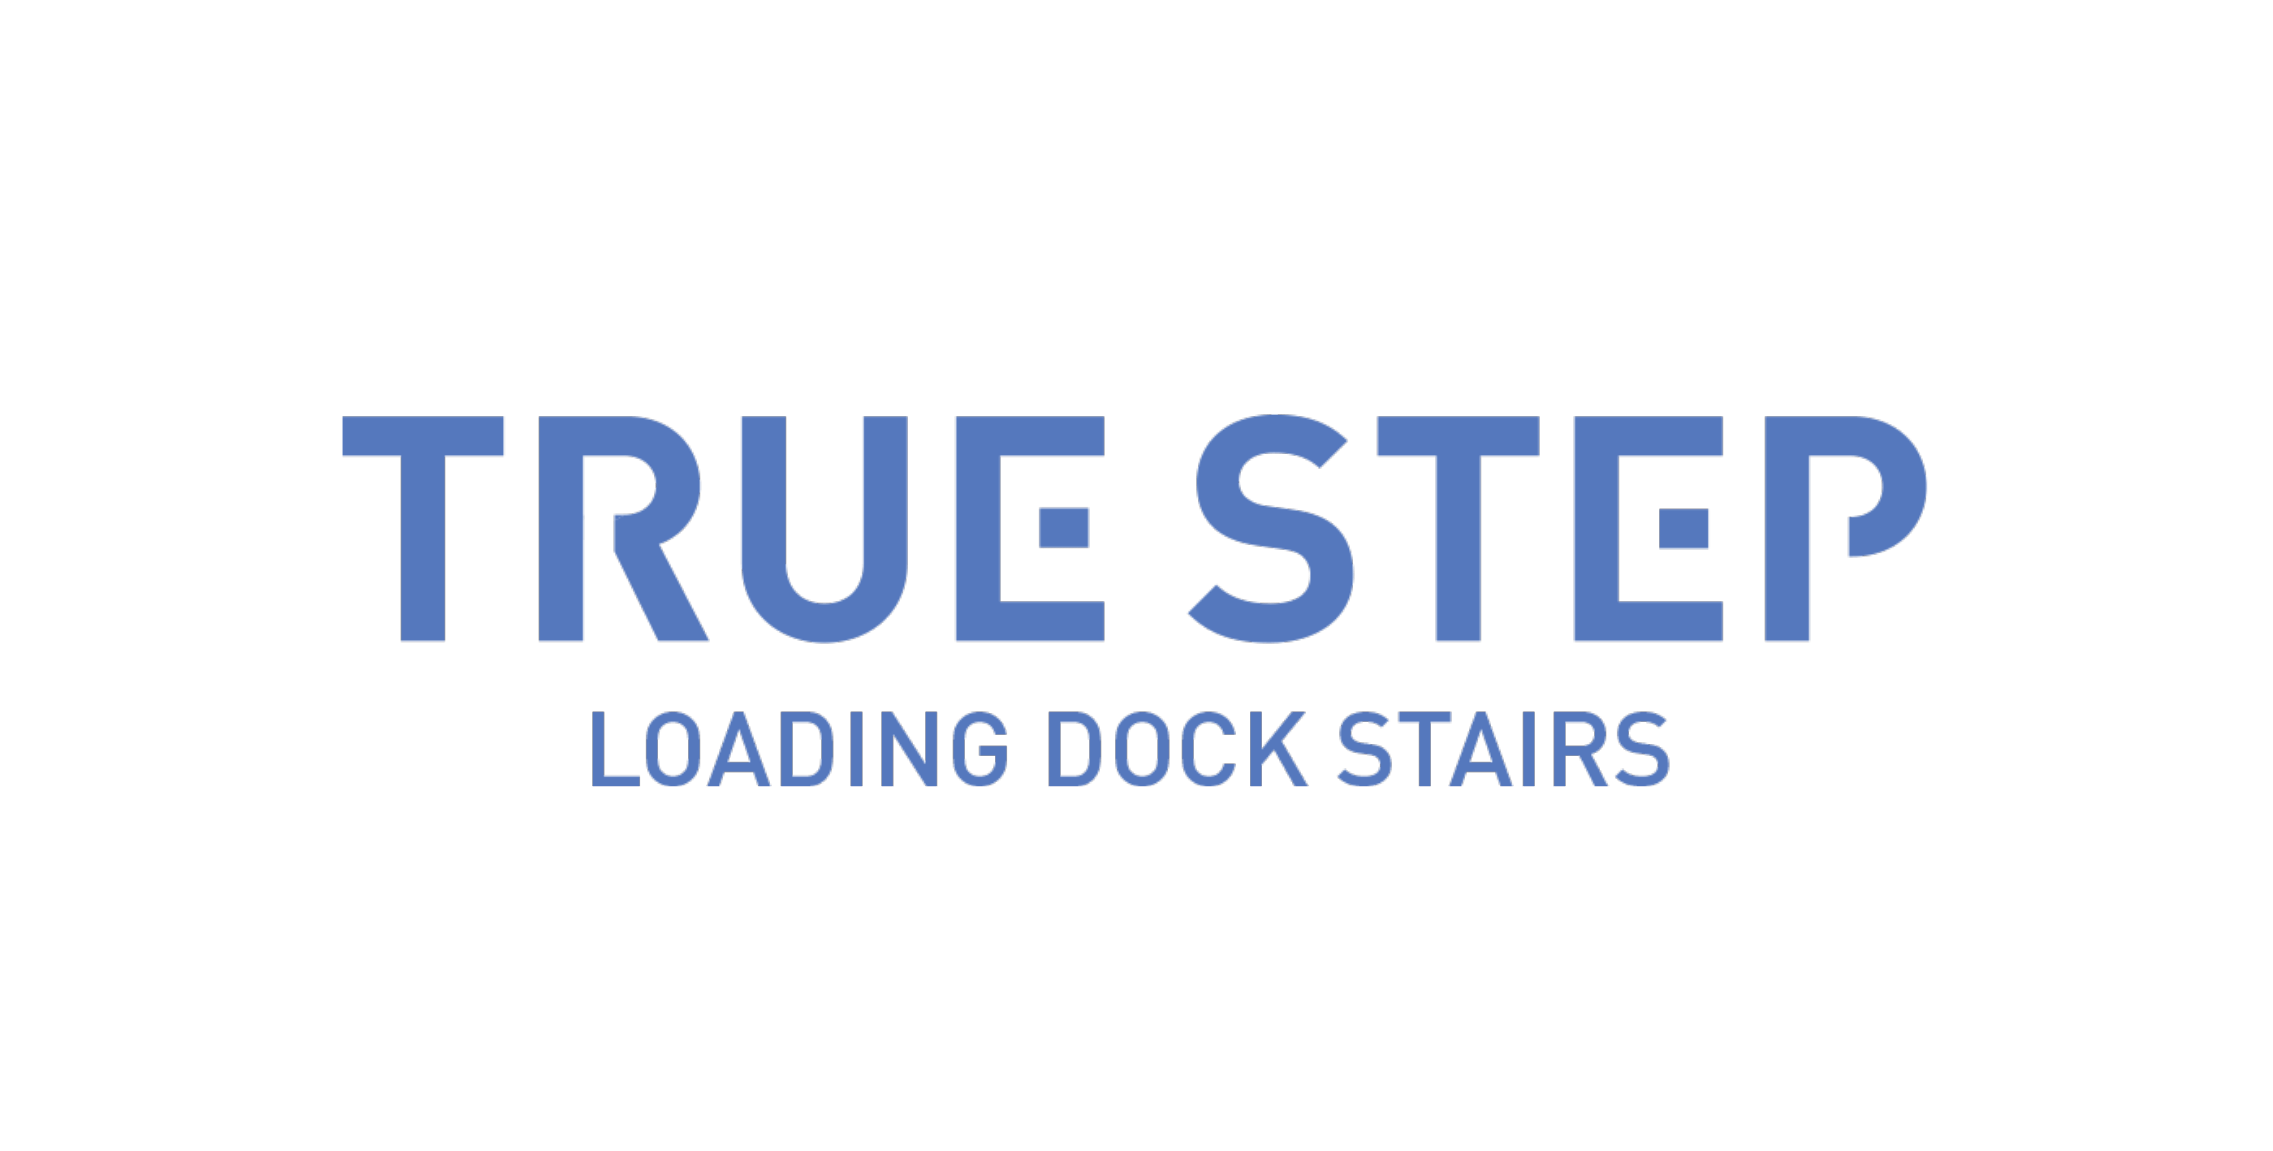 True Step - Loading Dock Stairs Logo